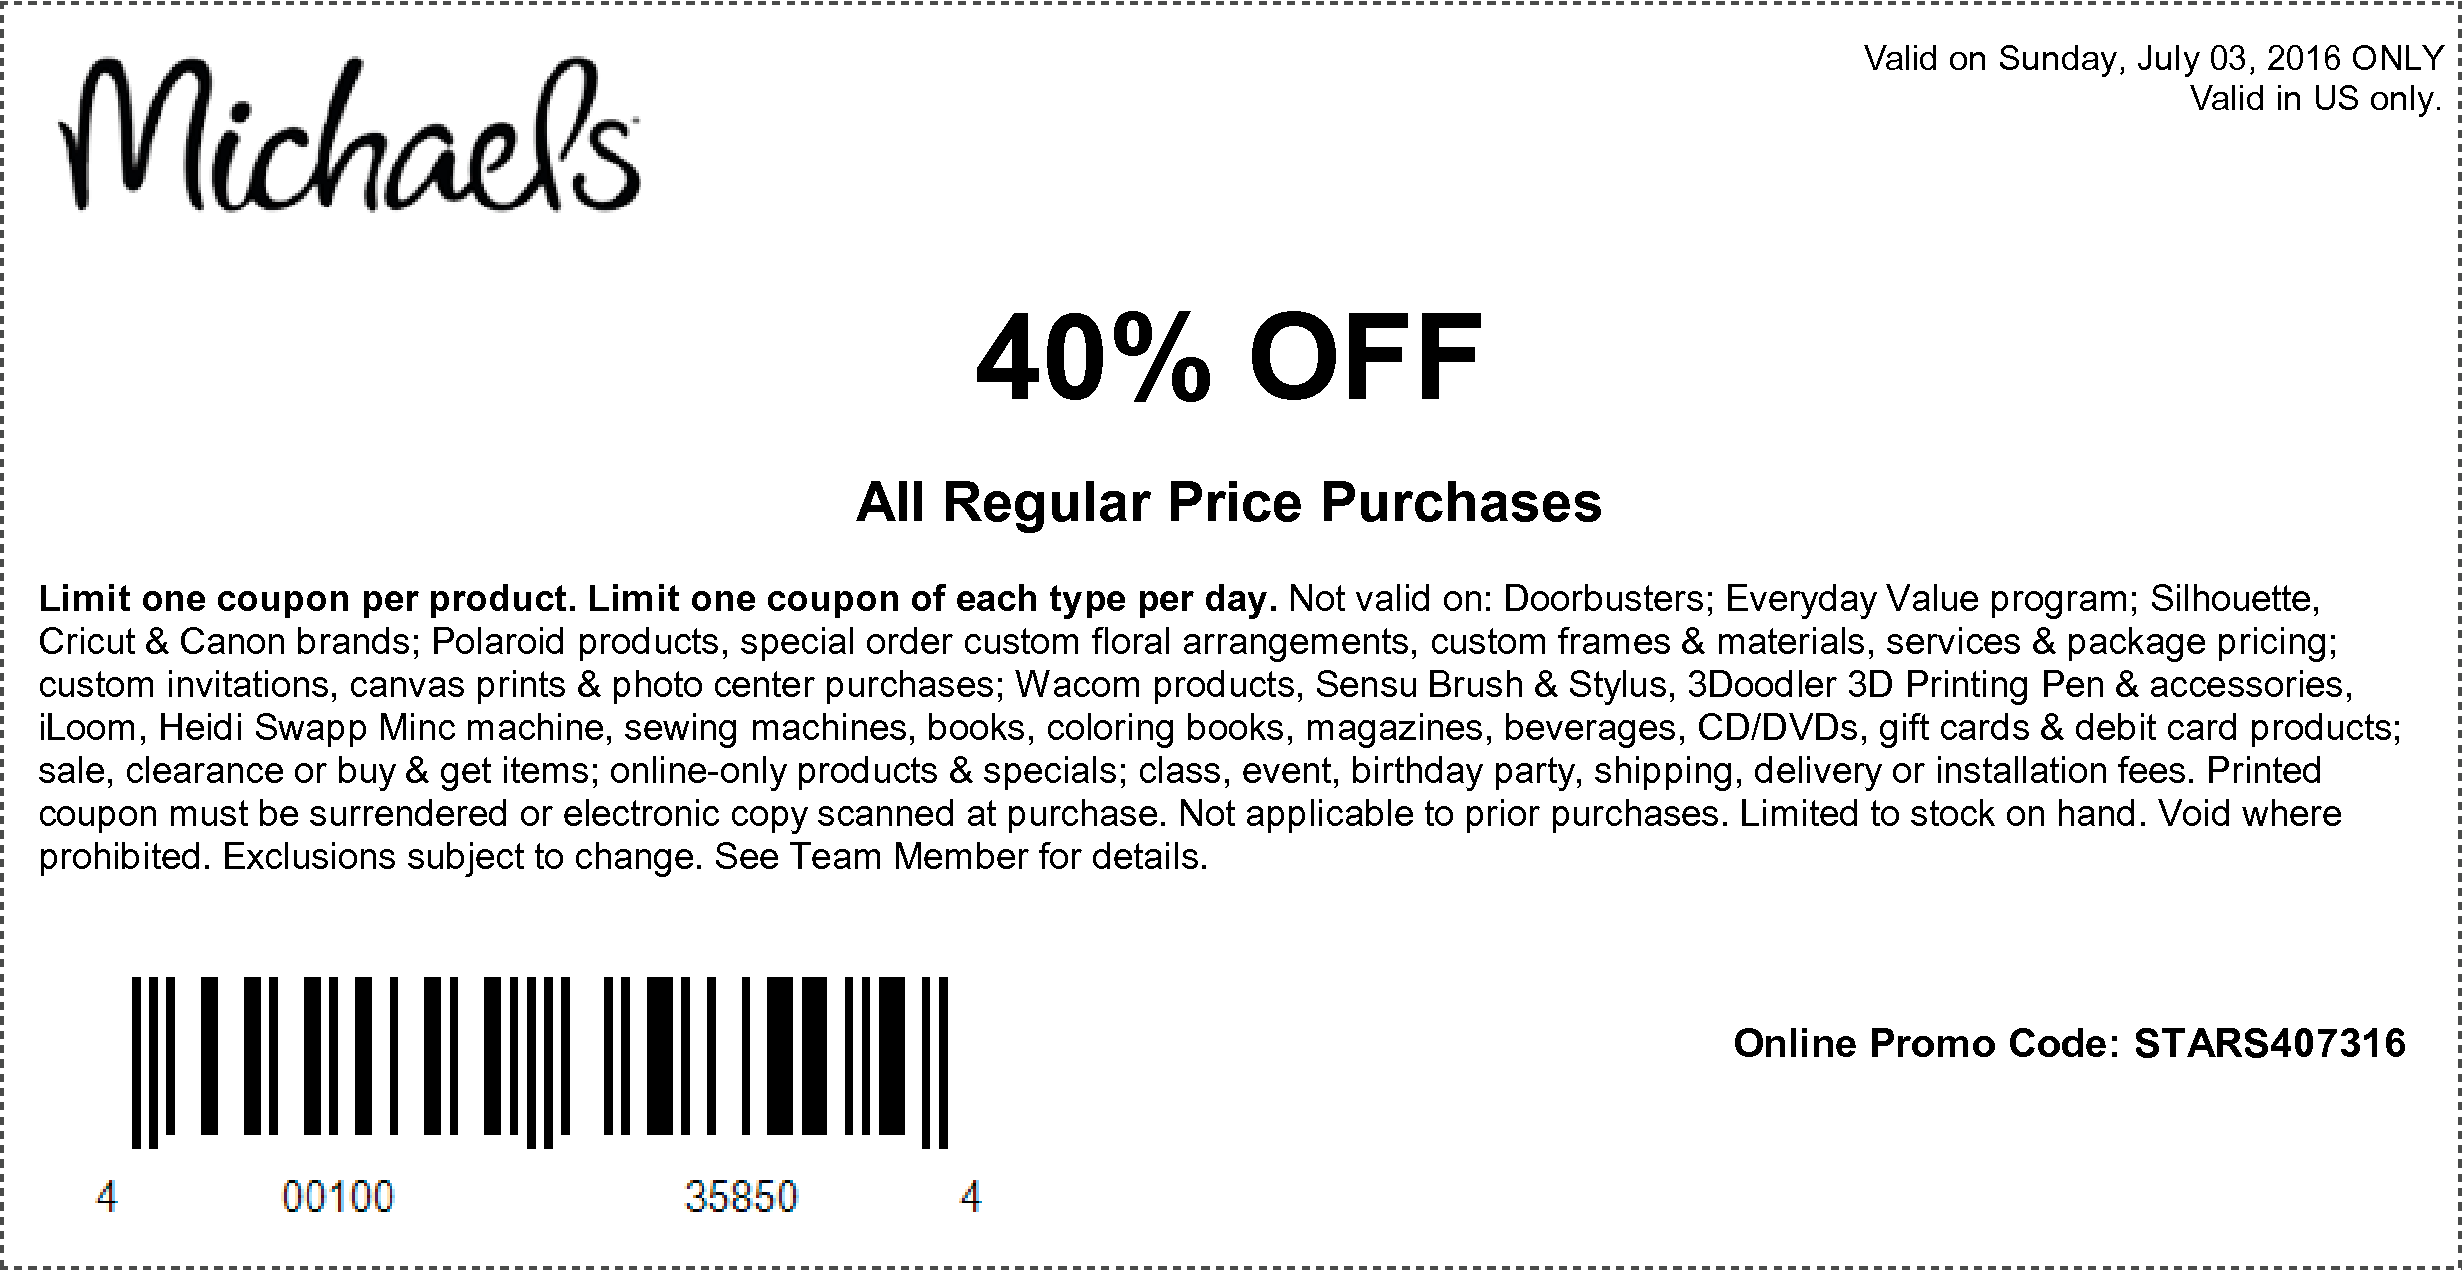 Hobby lobby coupon 40 off entire purchase - M 7 03 16 1